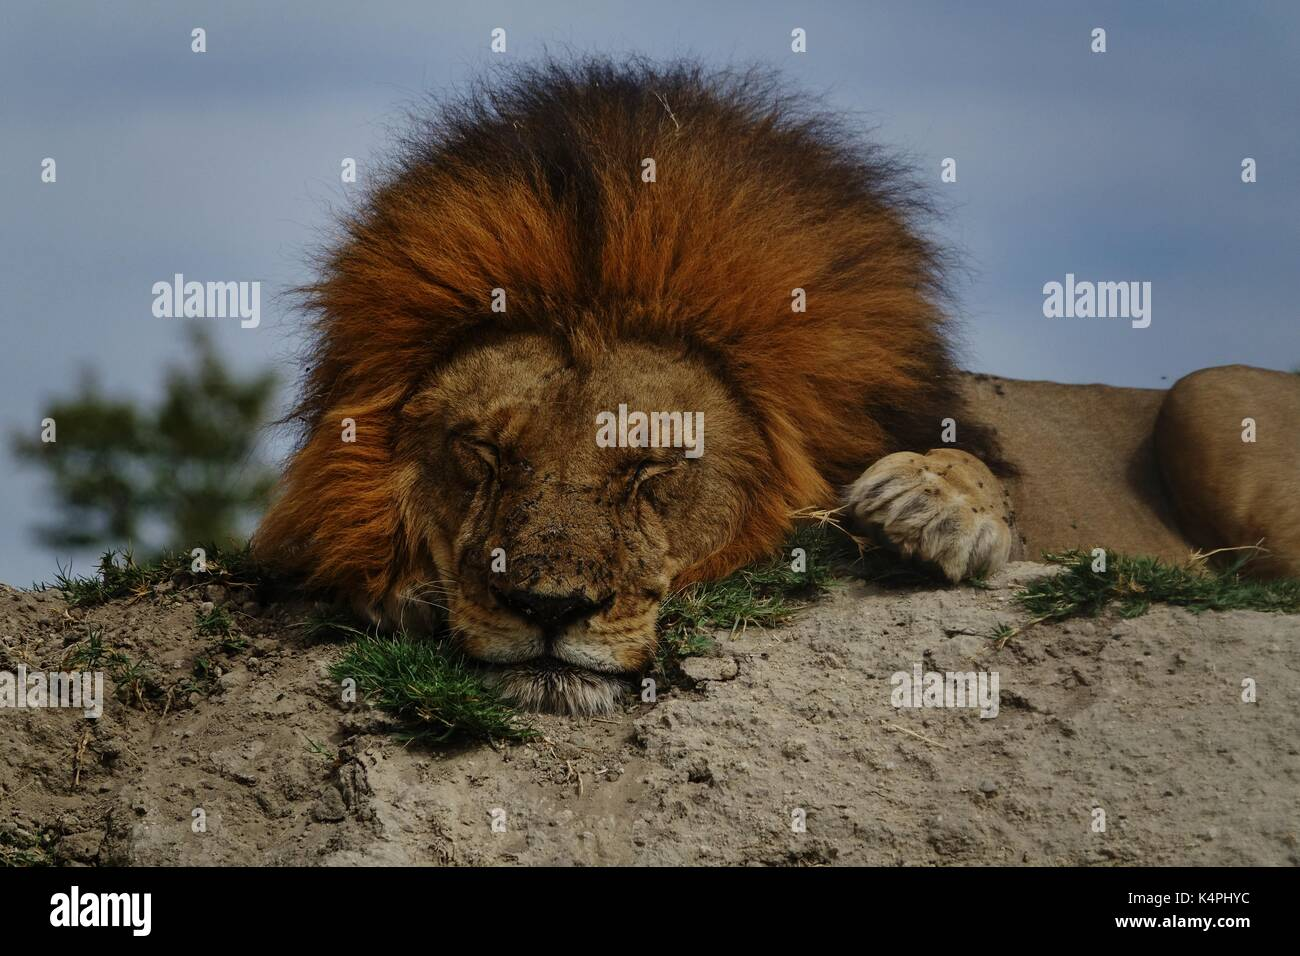 Male African lion sleeping close up - Stock Image